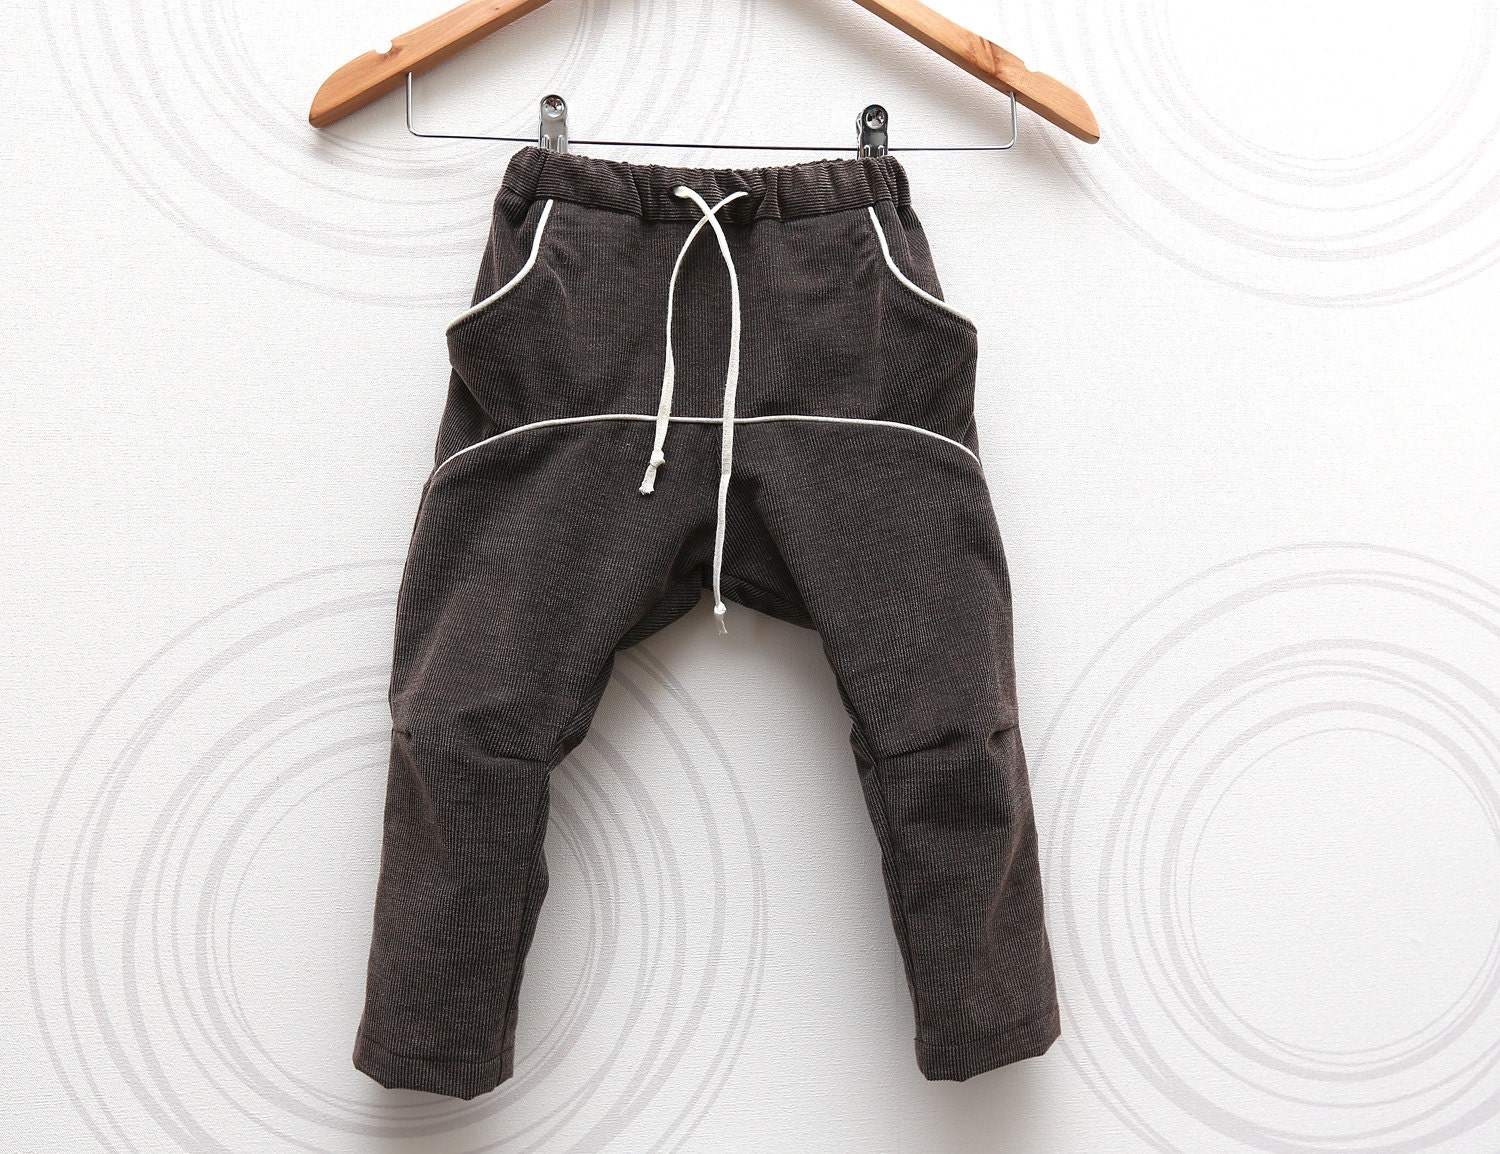 Toddler boys corduroy pants in brown Adjustable waist Comfortable slouchy low crotch trousers with tighter legs  // size US 1-3 (EU 80-98) - ZanziBach